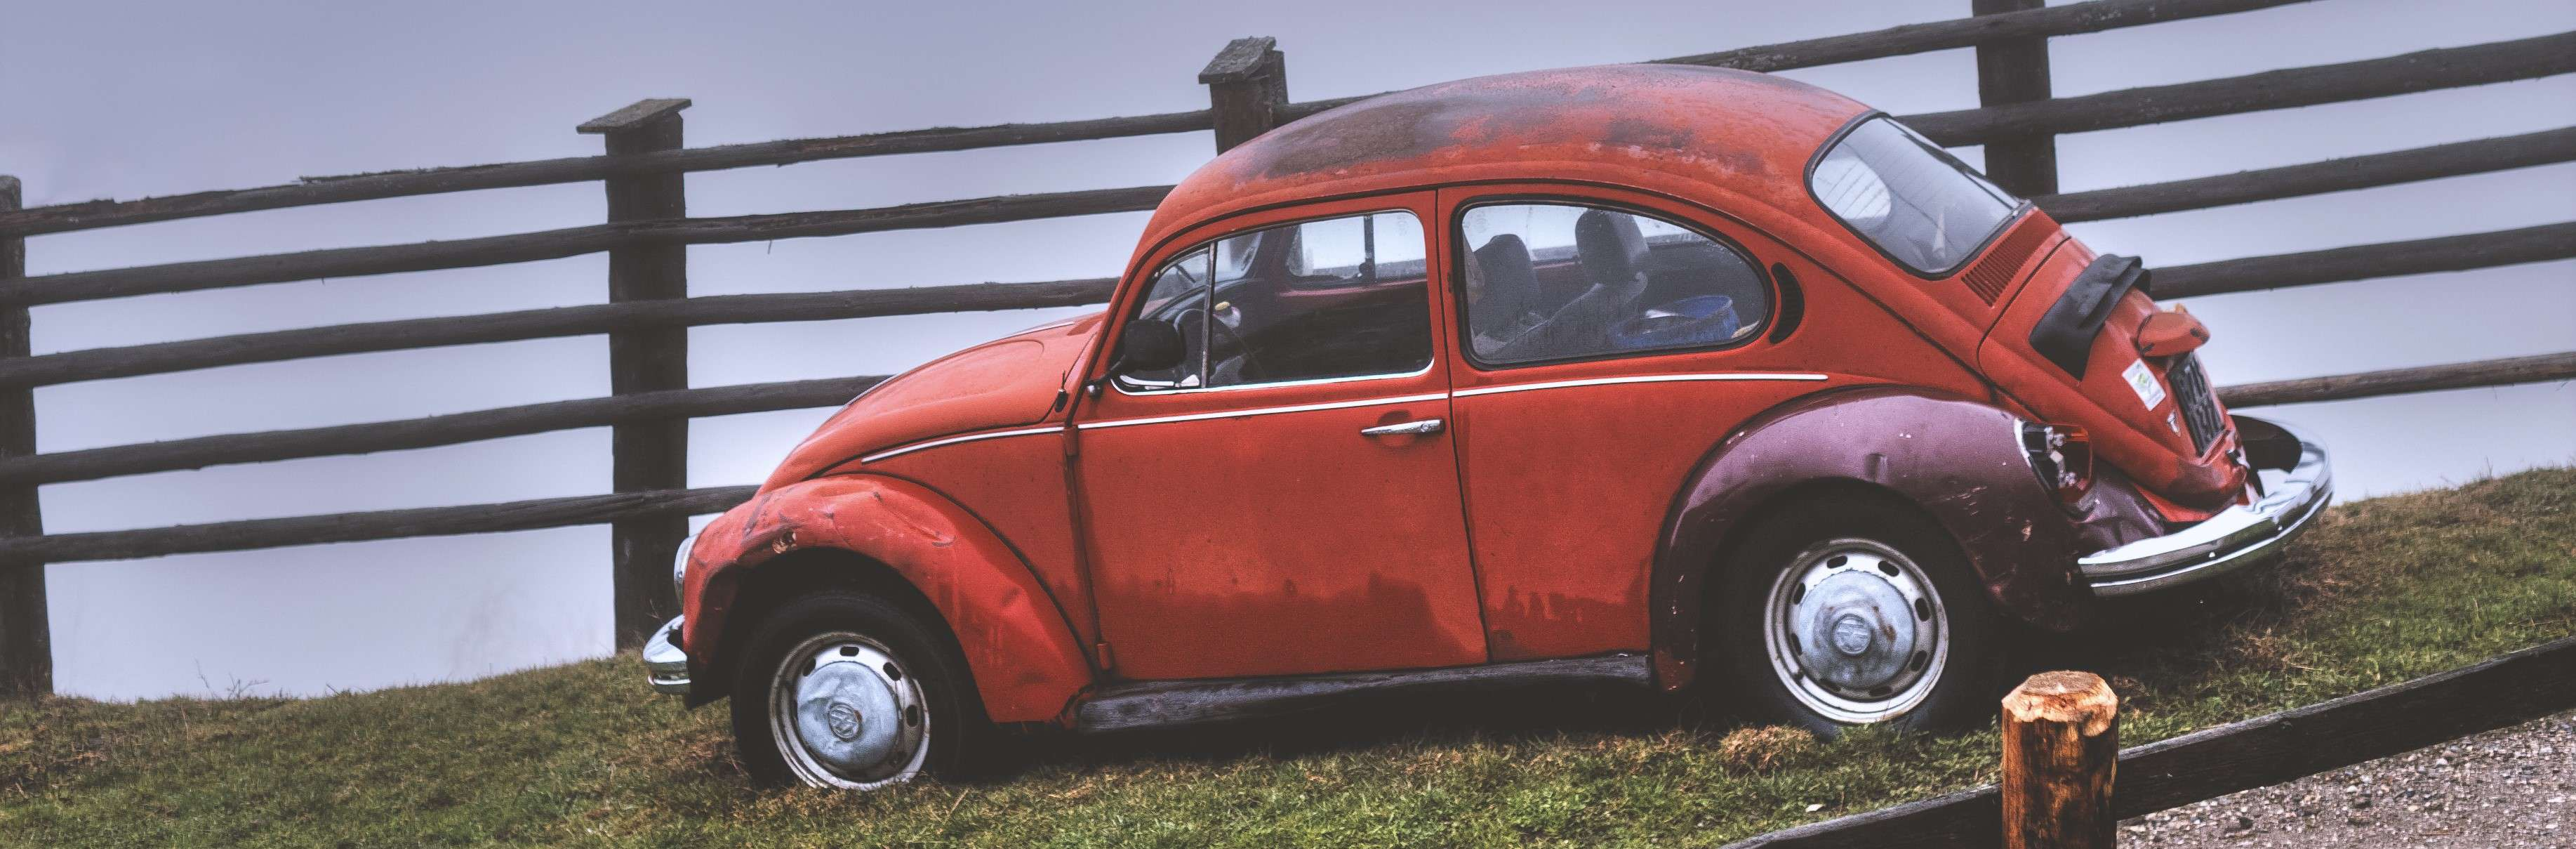 Red Oldtimer Beetle | Breast Cancer Car Donations